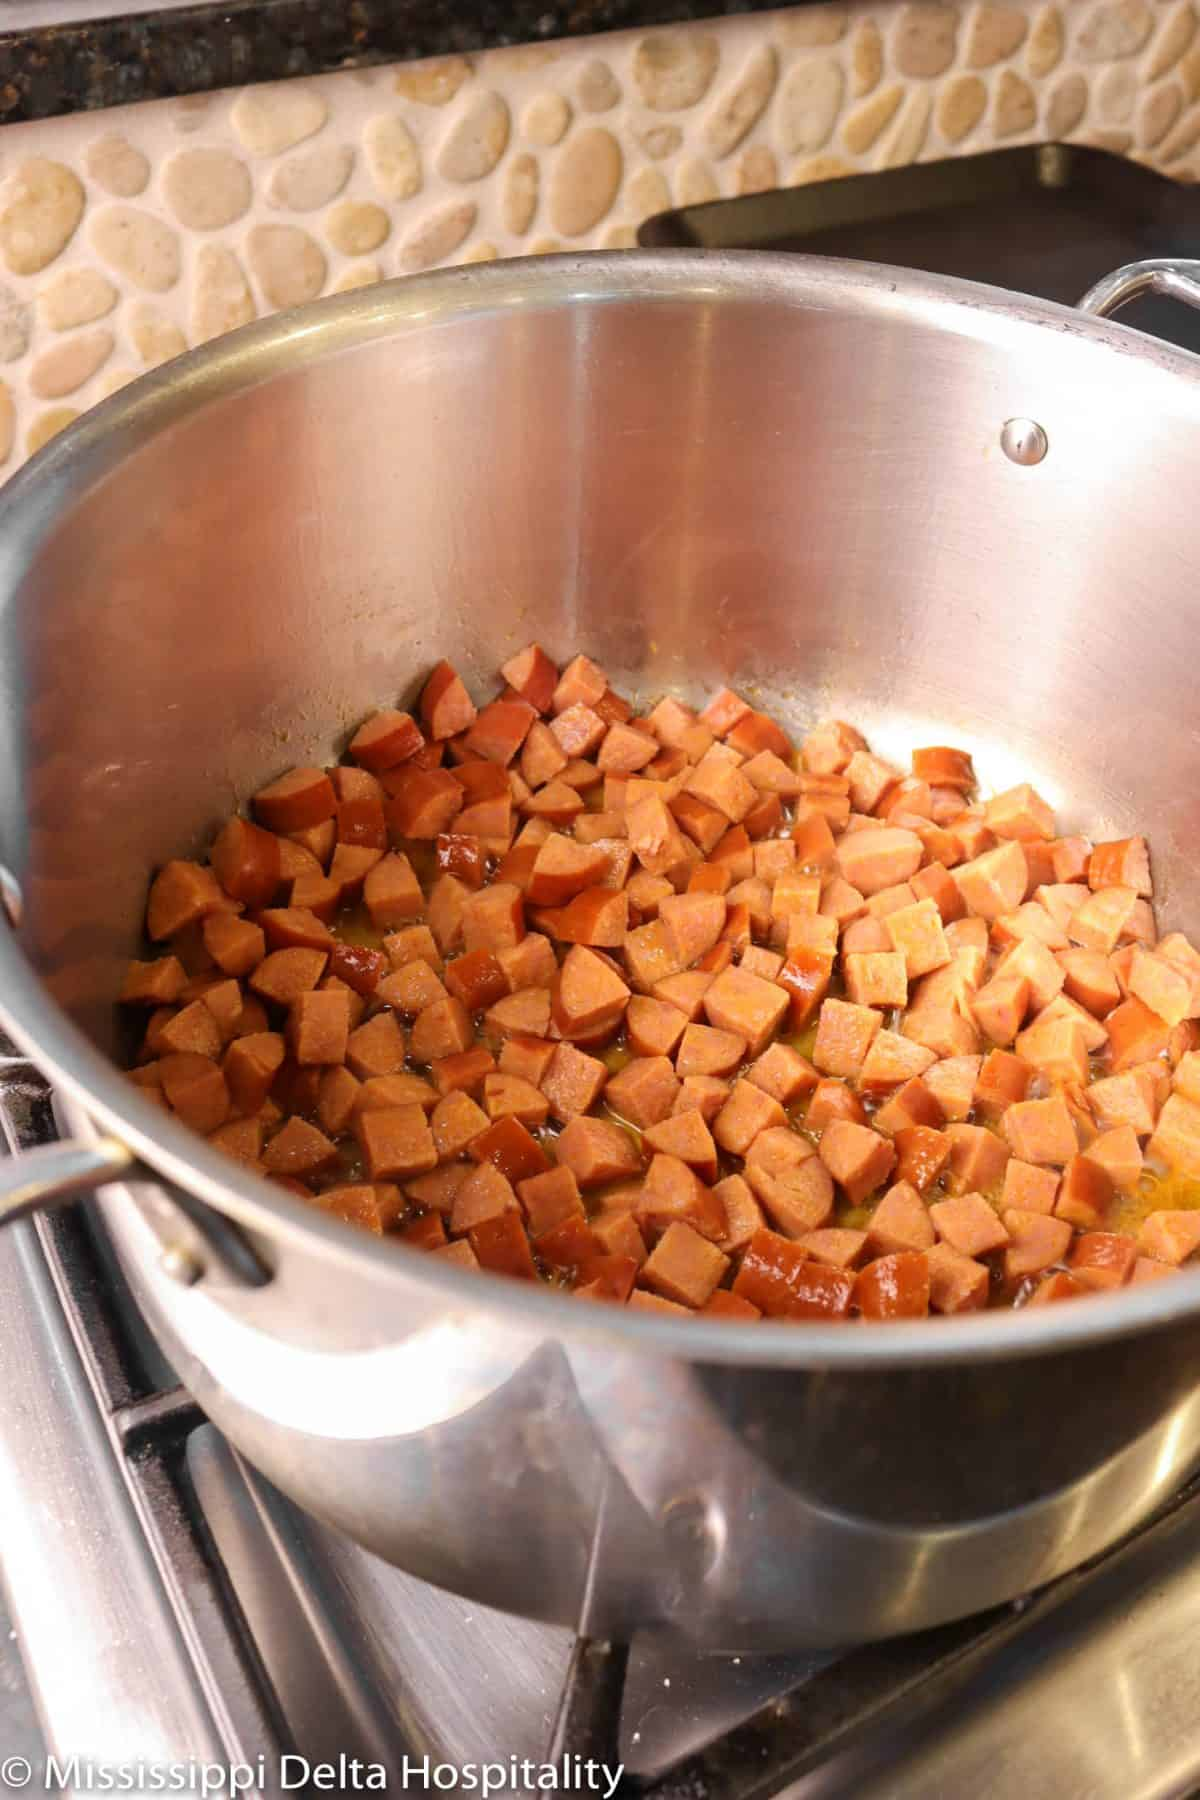 cooked andouille sausage in a pot